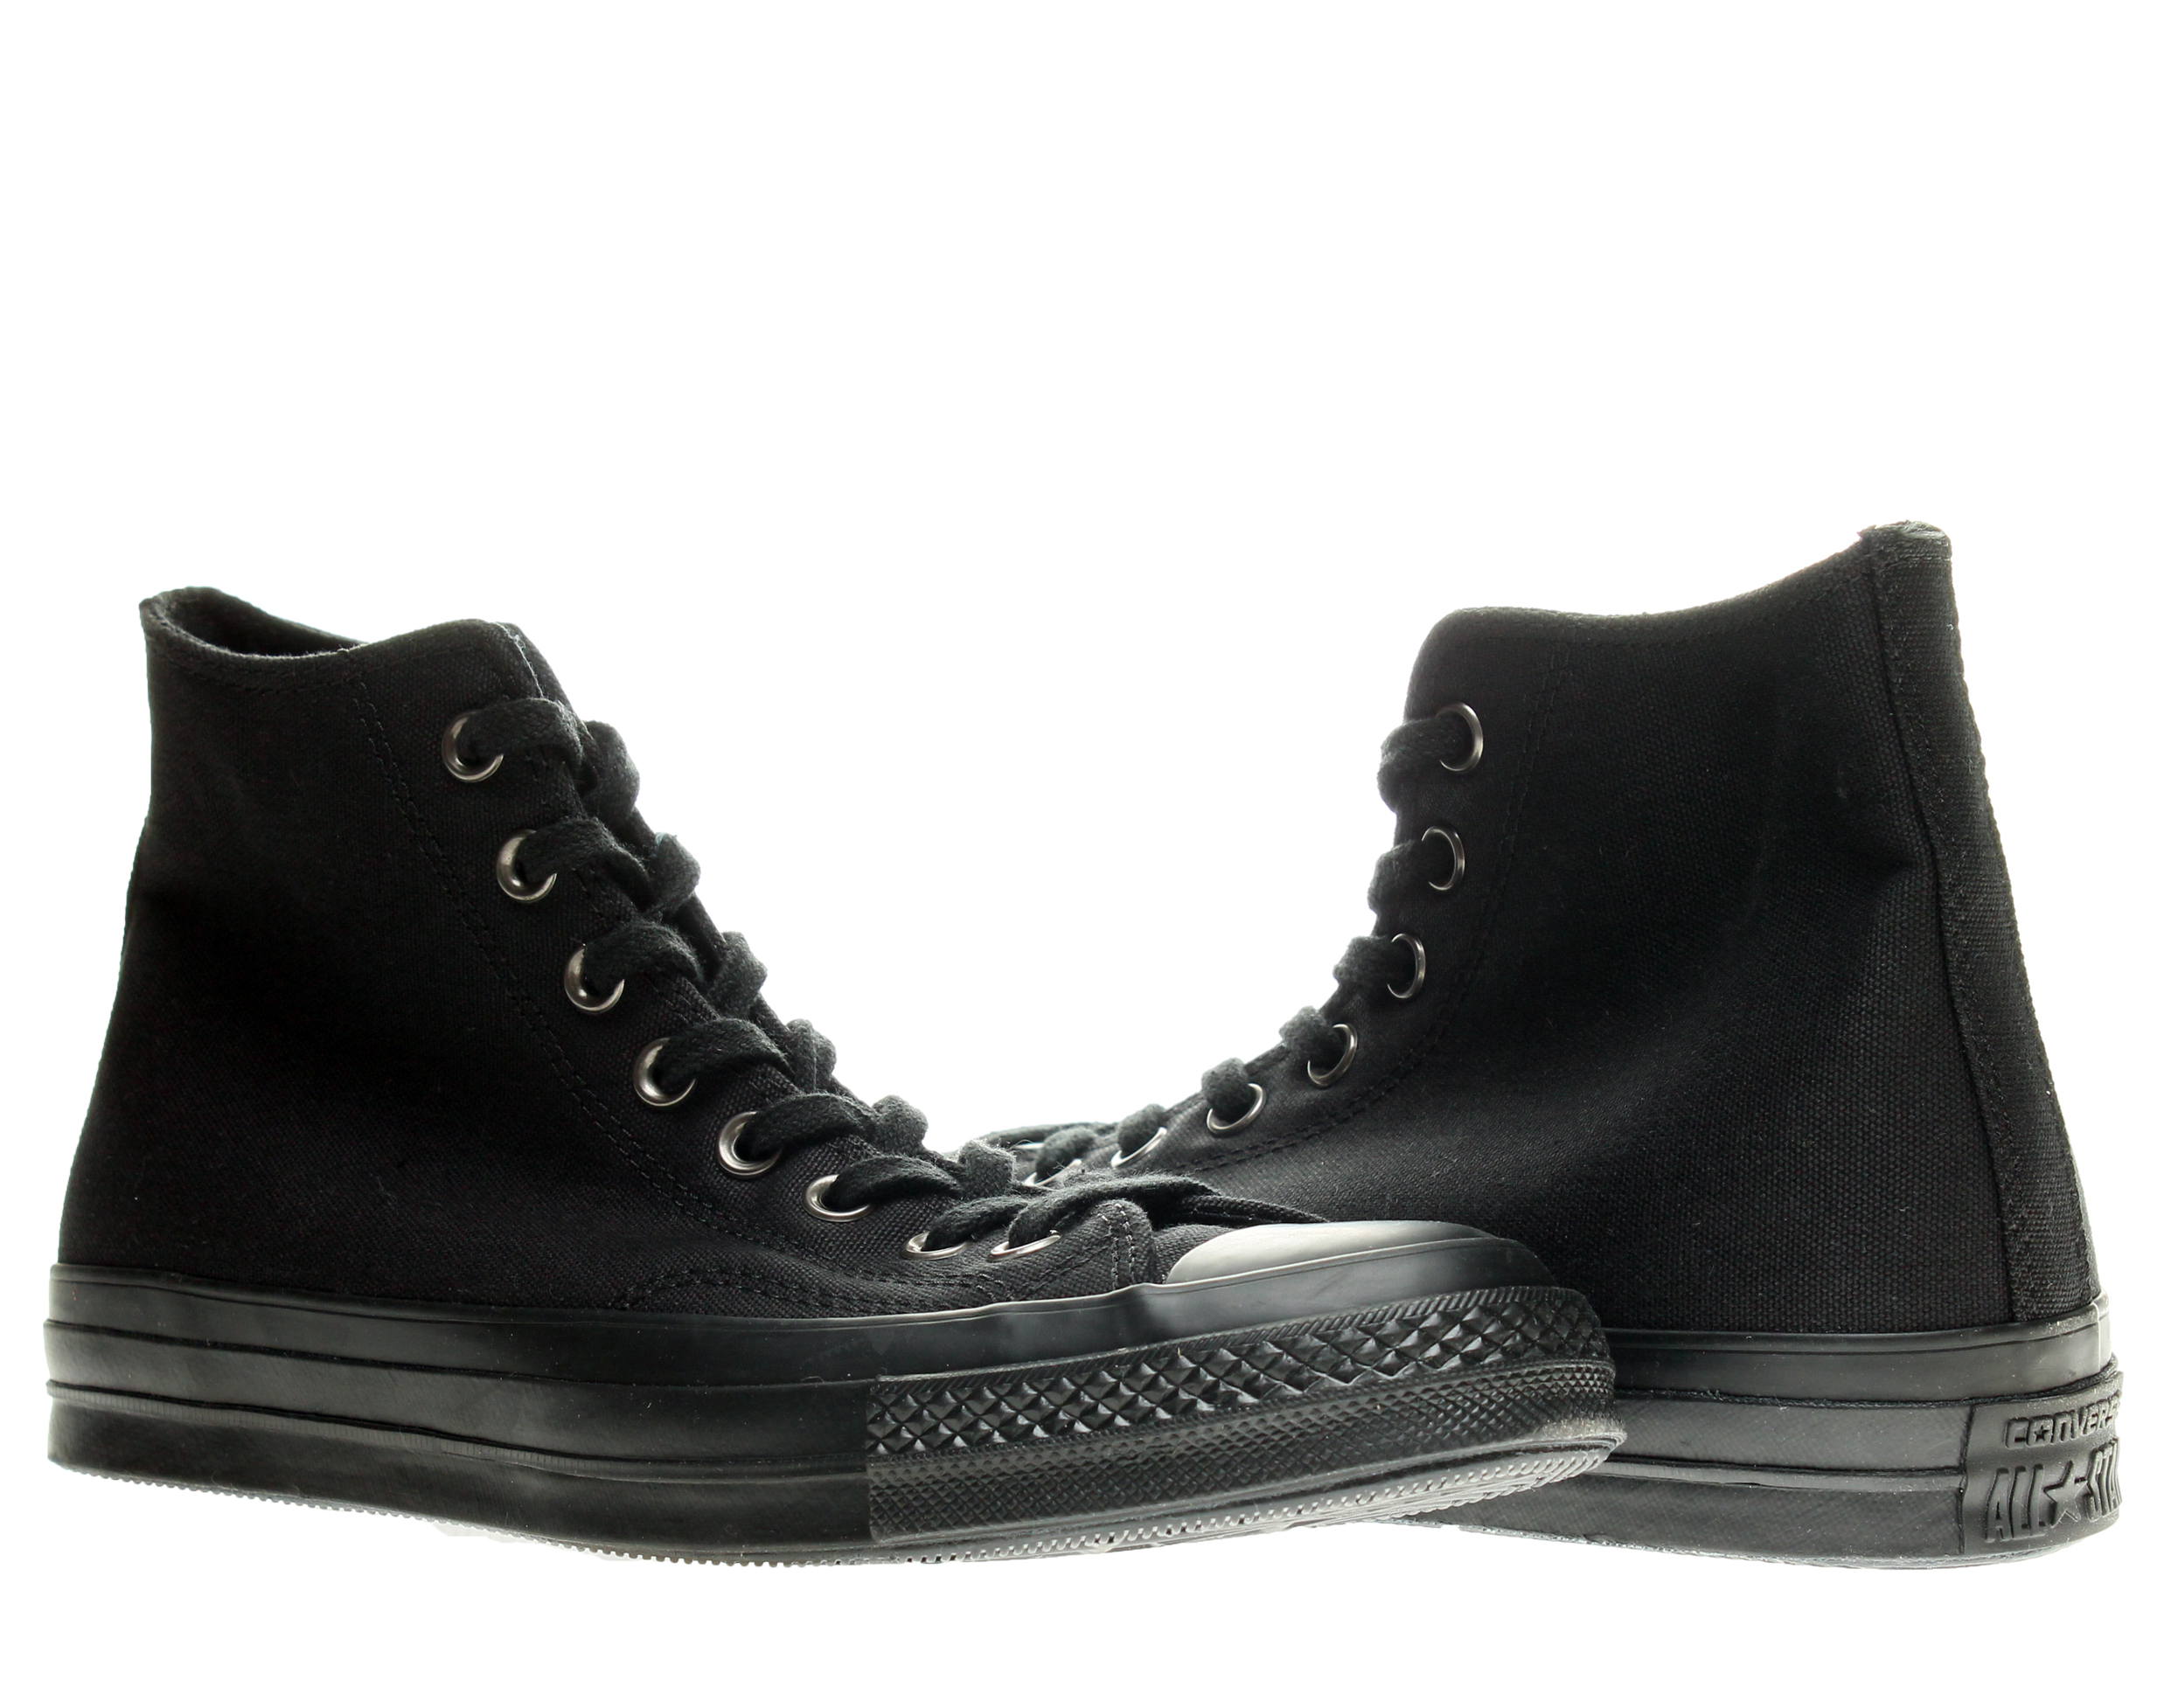 Converse Chuck Taylor All Star '70 Black Monoch High Top Sneakers 147070C by